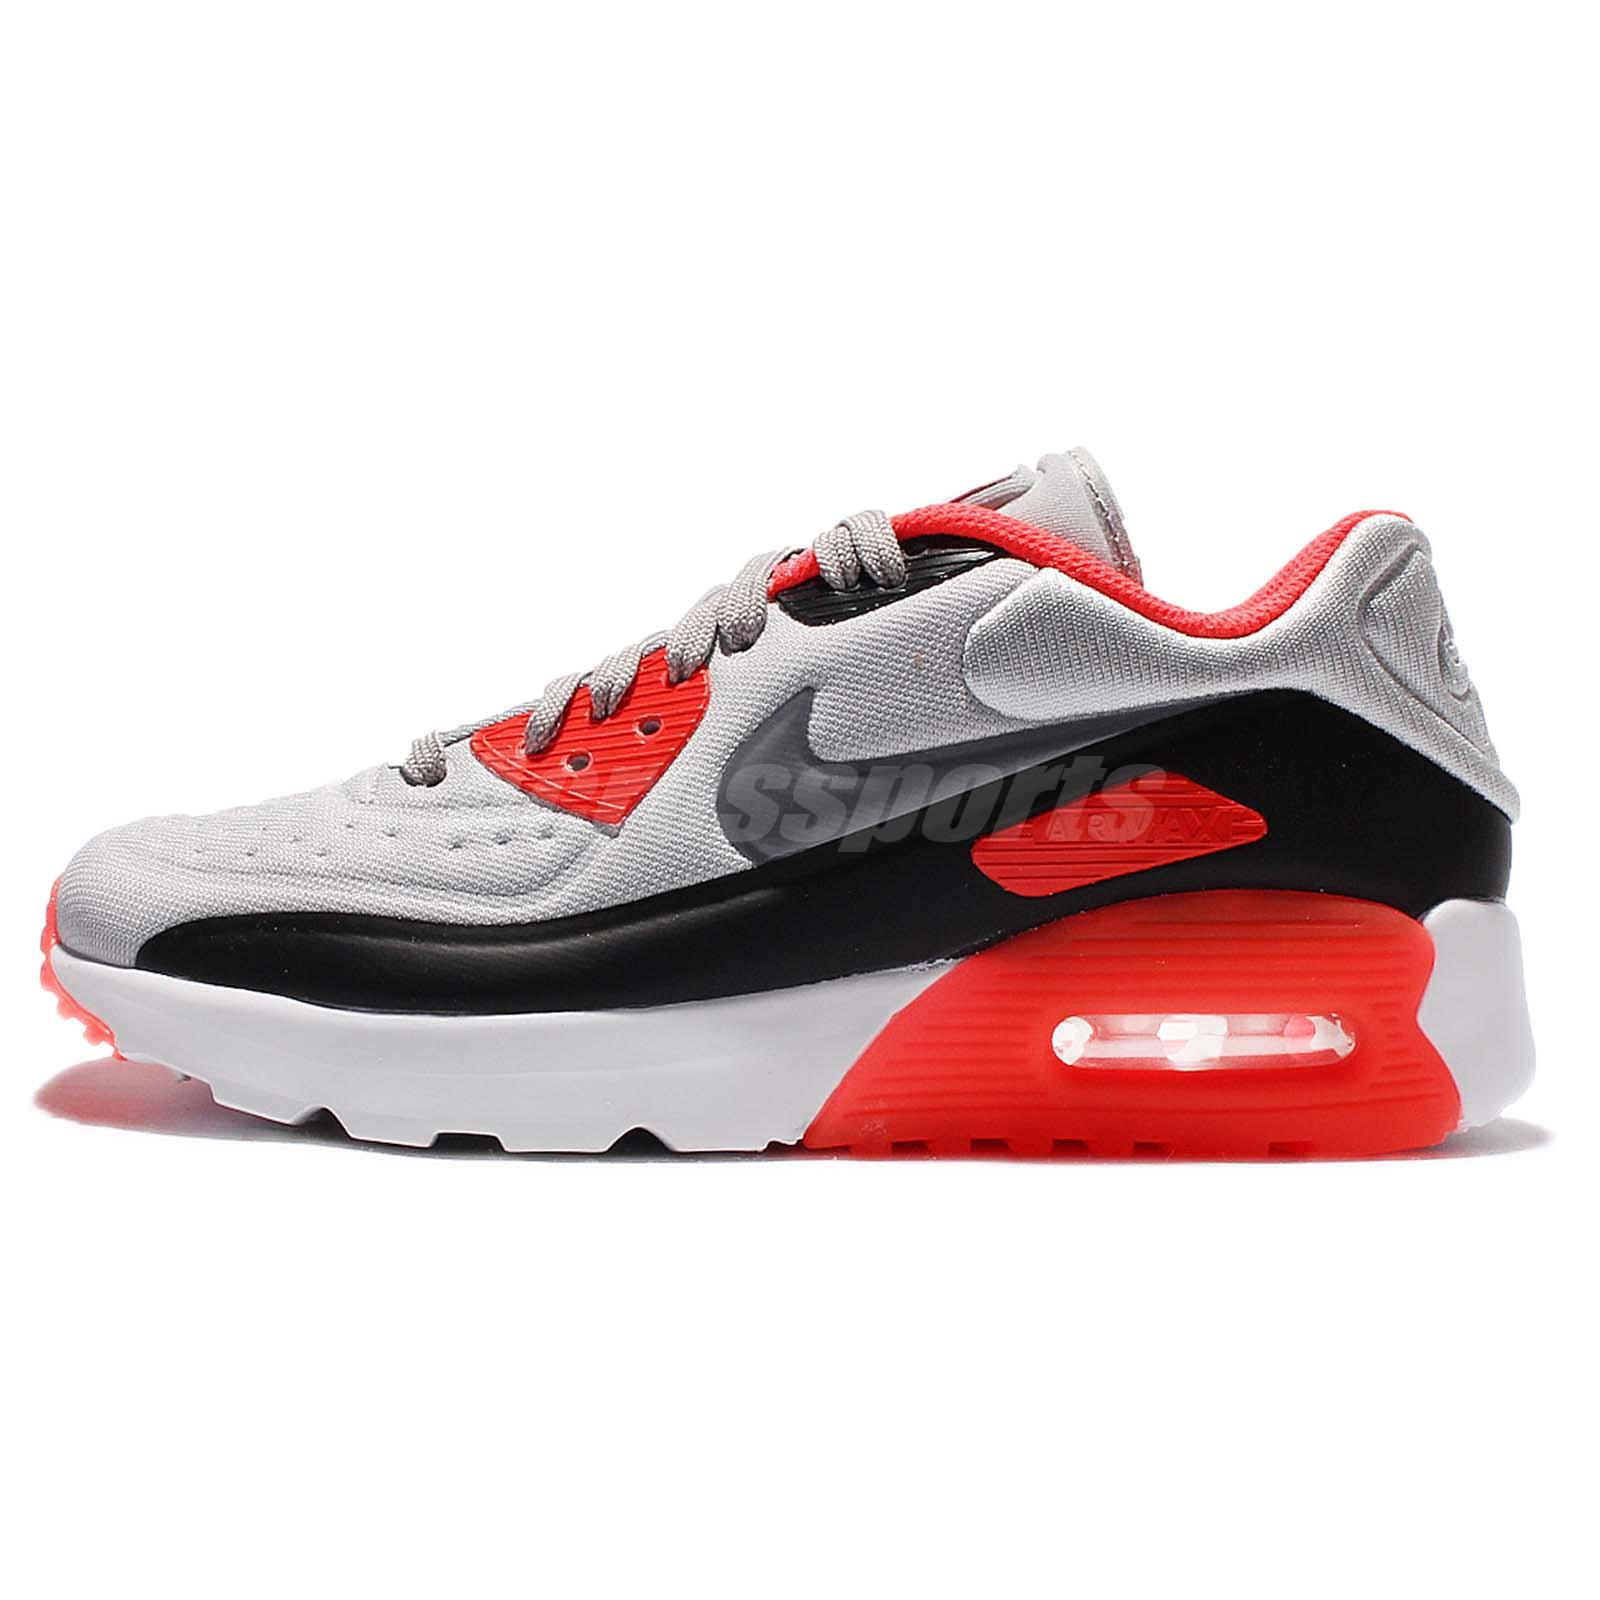 separation shoes 69047 f8a02 ... cheapest nike air max 90 ultra se gs grey red womens girls og running  shoes 844599